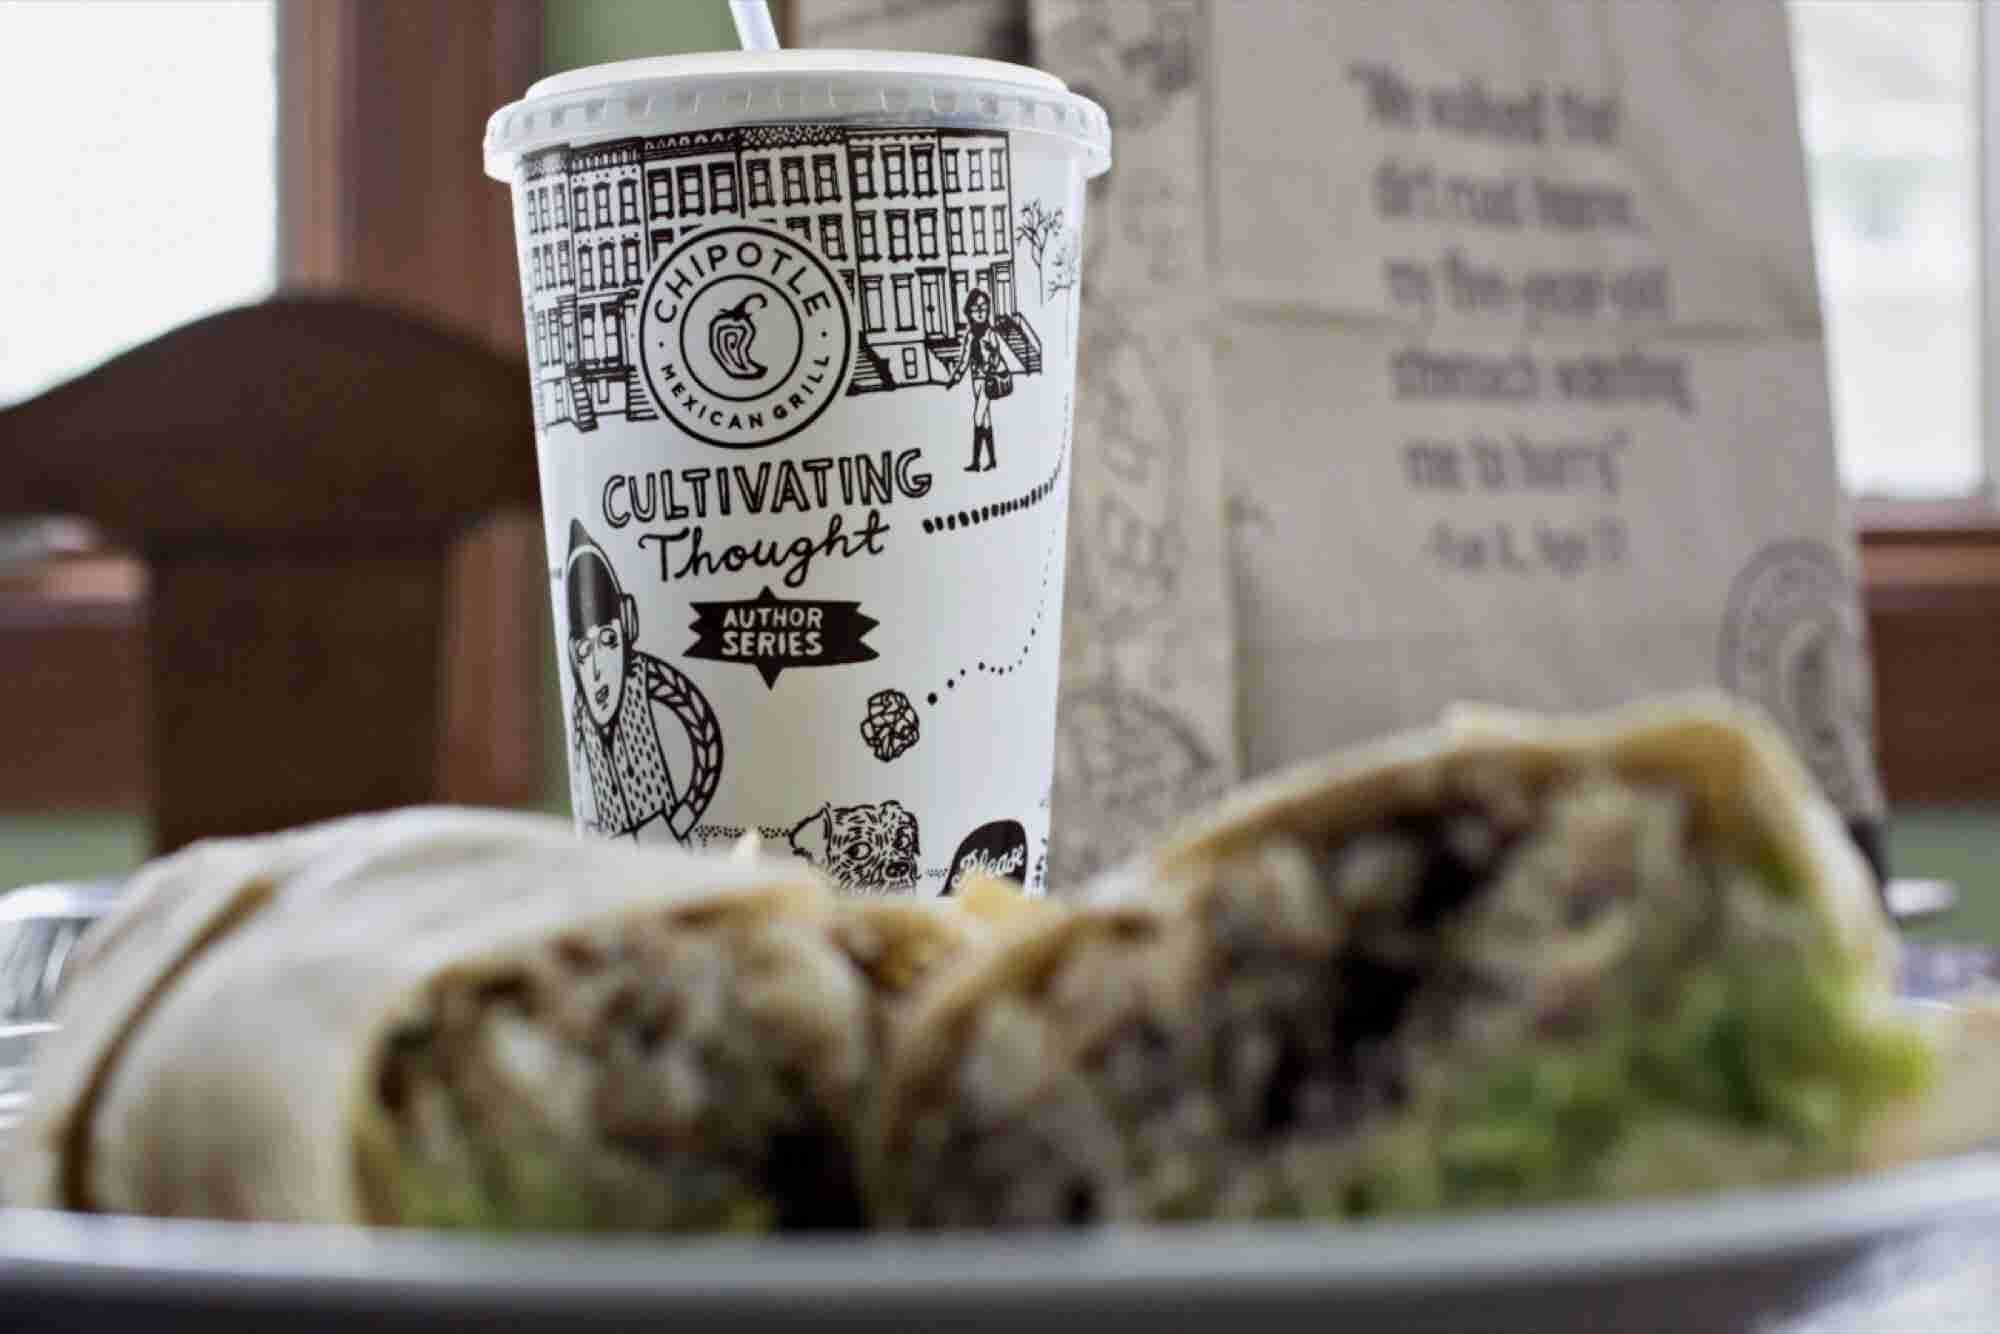 Chipotle's Rewards Program Is so Flawed They Don't Know Who Is Eating Their Free Burritos